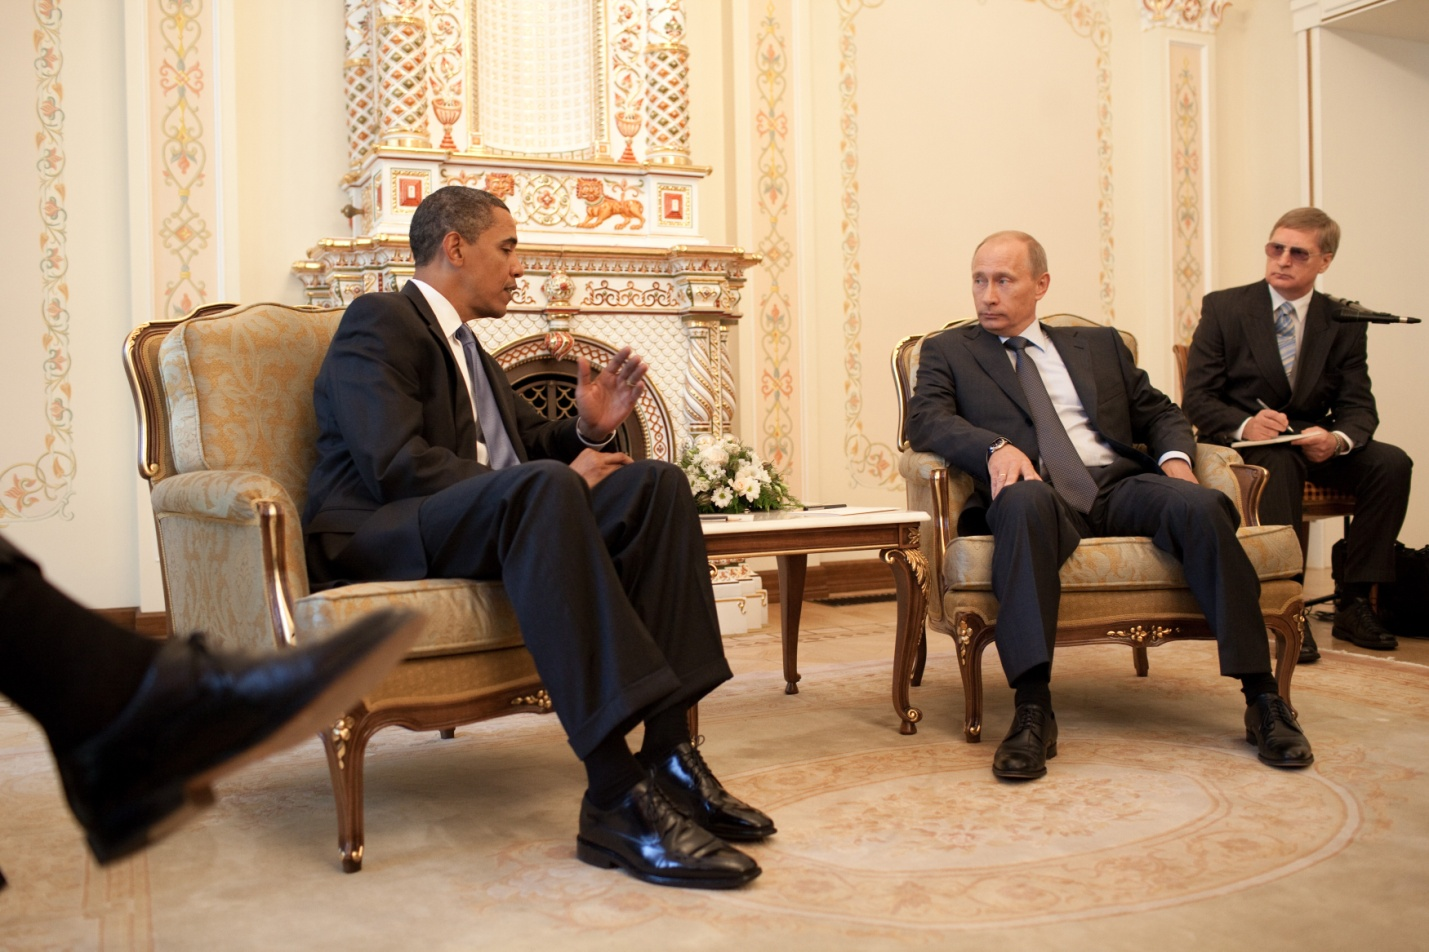 President Obama condemns Russian officials to suffer another year of sanctions